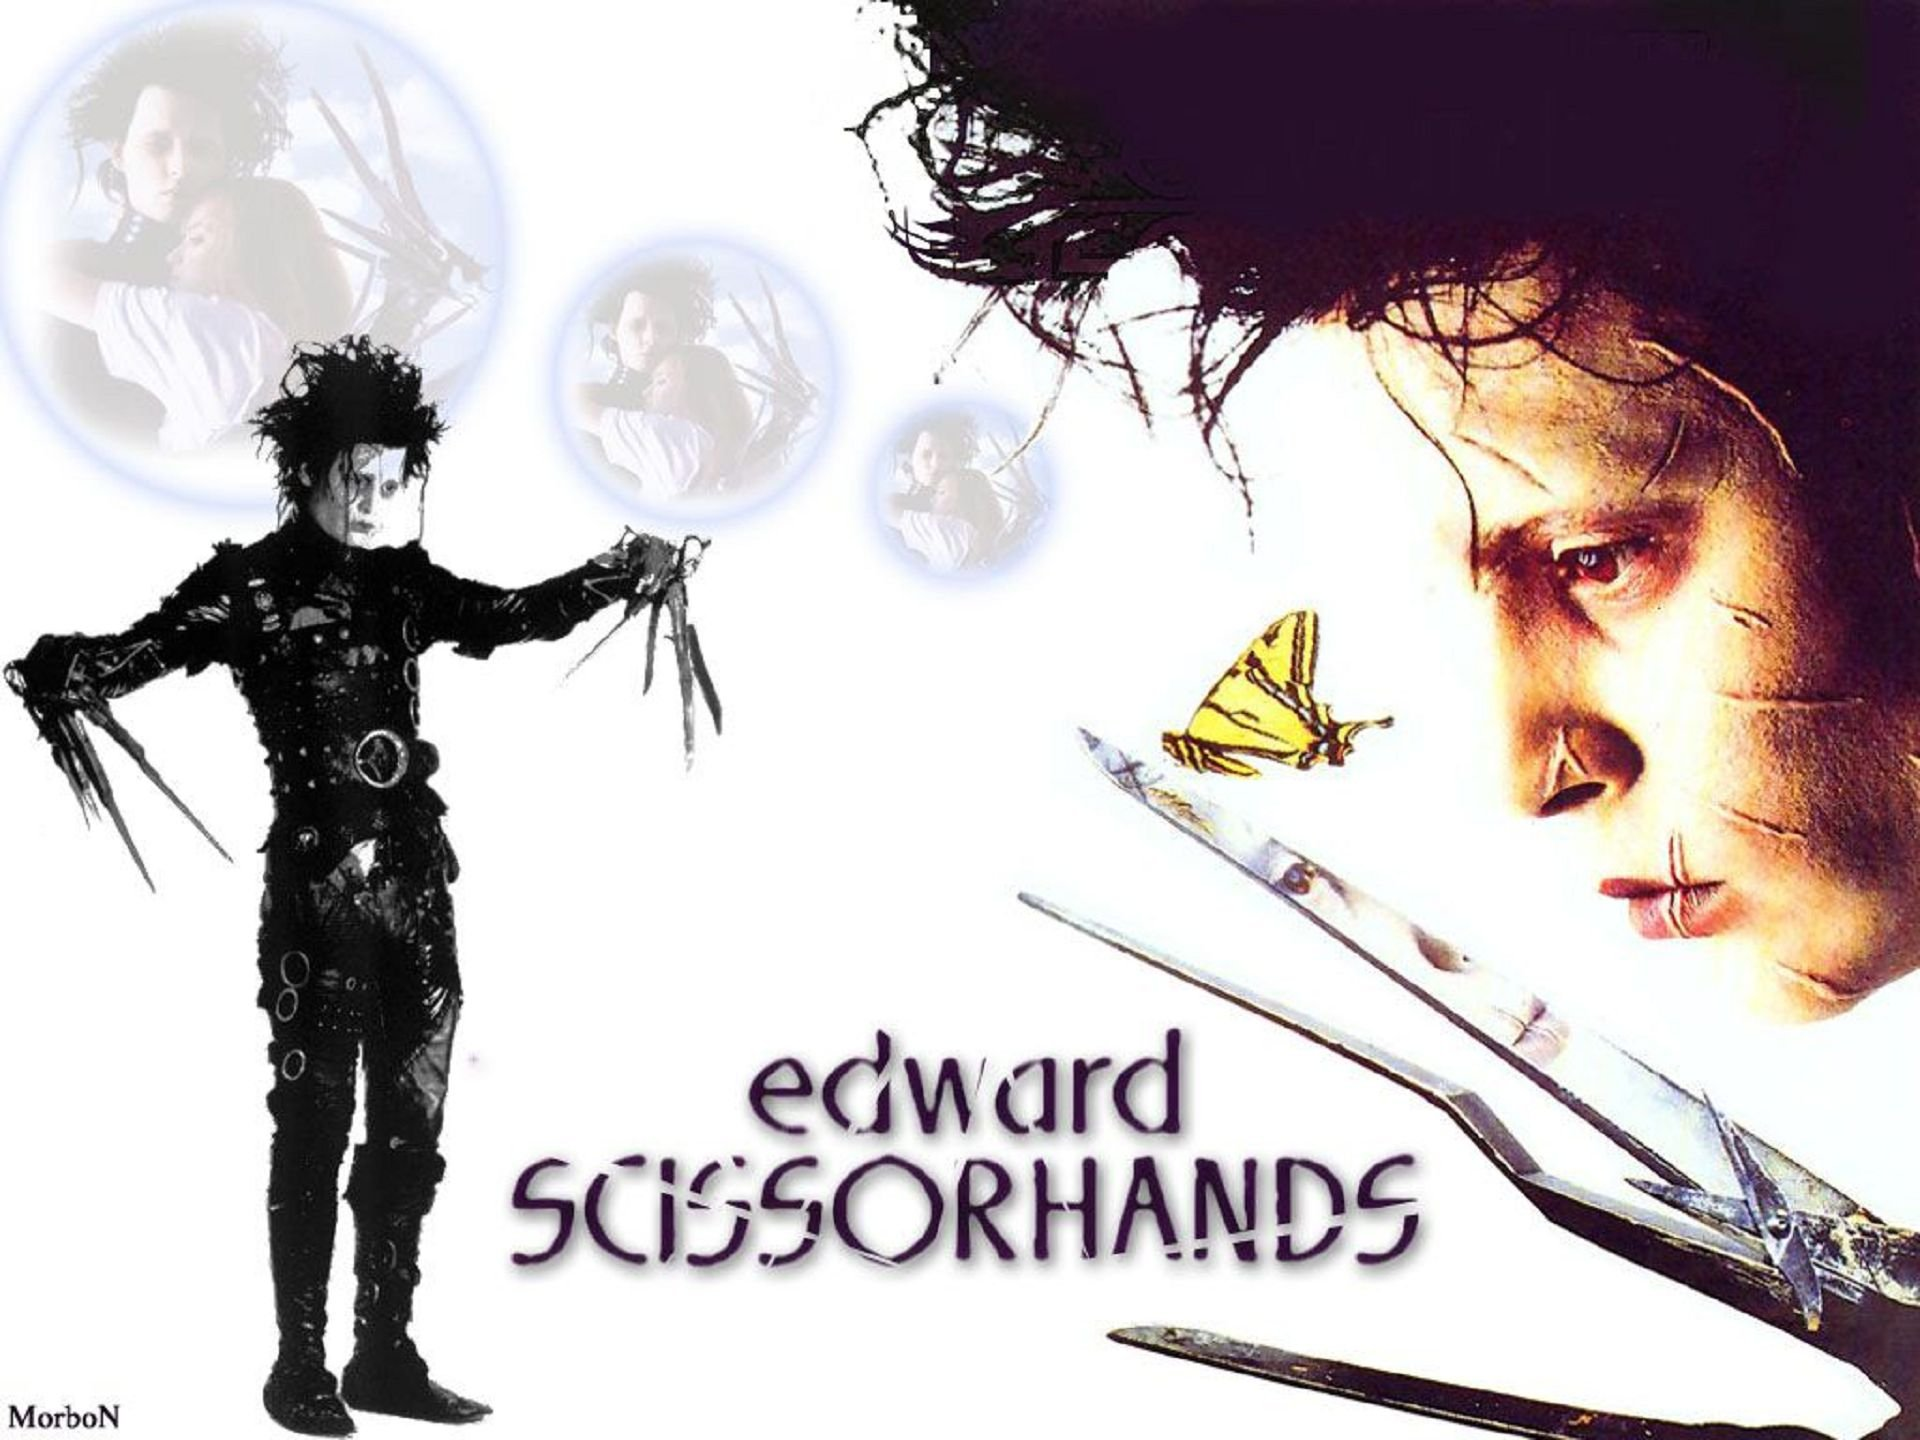 Edward Scissorhands - with two images of actor - one standing and one profile view with a butterfly in his scissorhands